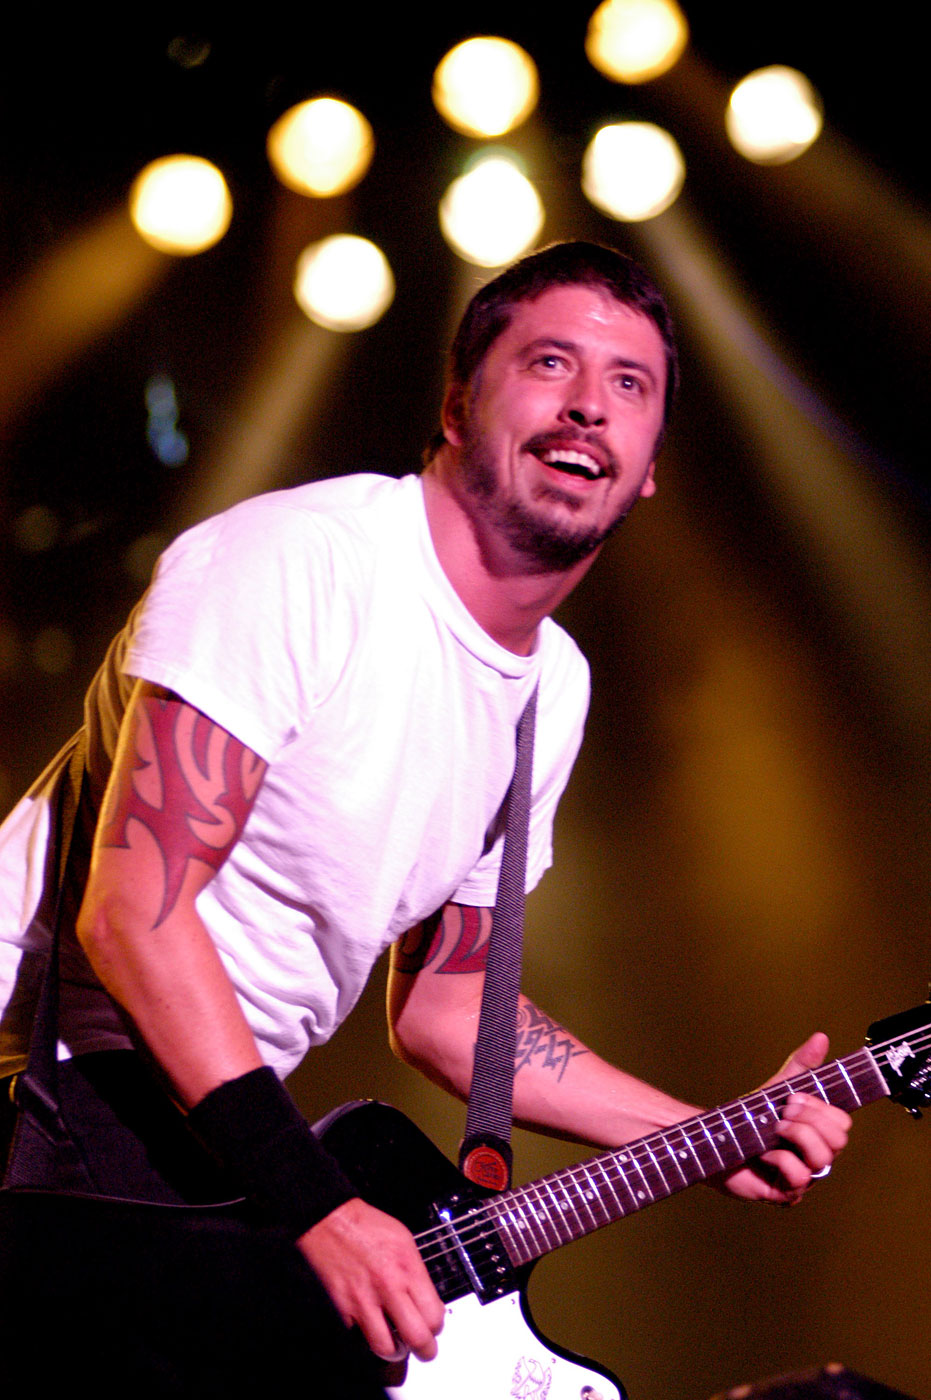 Dave Grohl performs at the 11th Annual Music Midtown Festival in Atlanta, Georgia on May 1, 2004.